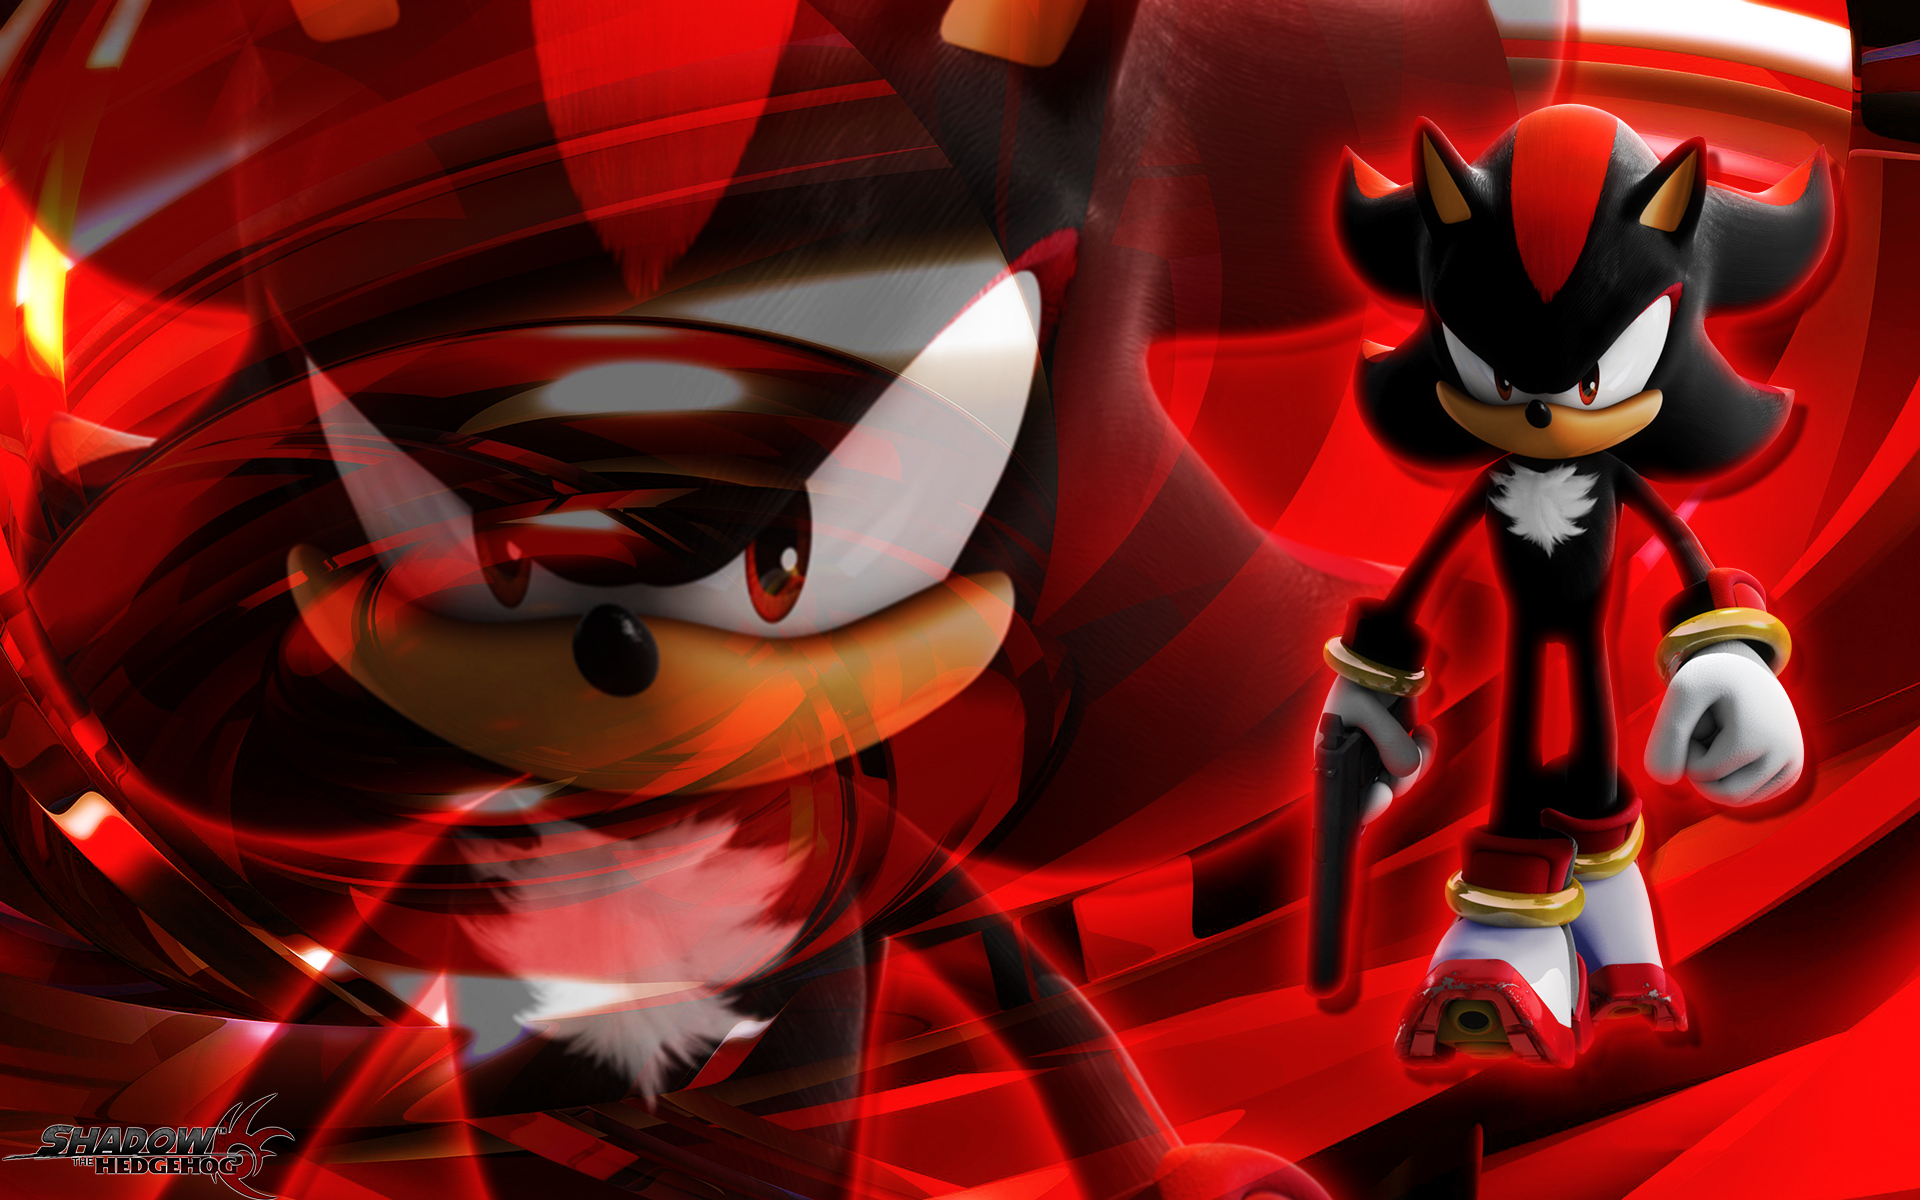 Shadow the hedgehog wallpaper wallpapersafari for Deviantart wallpaper